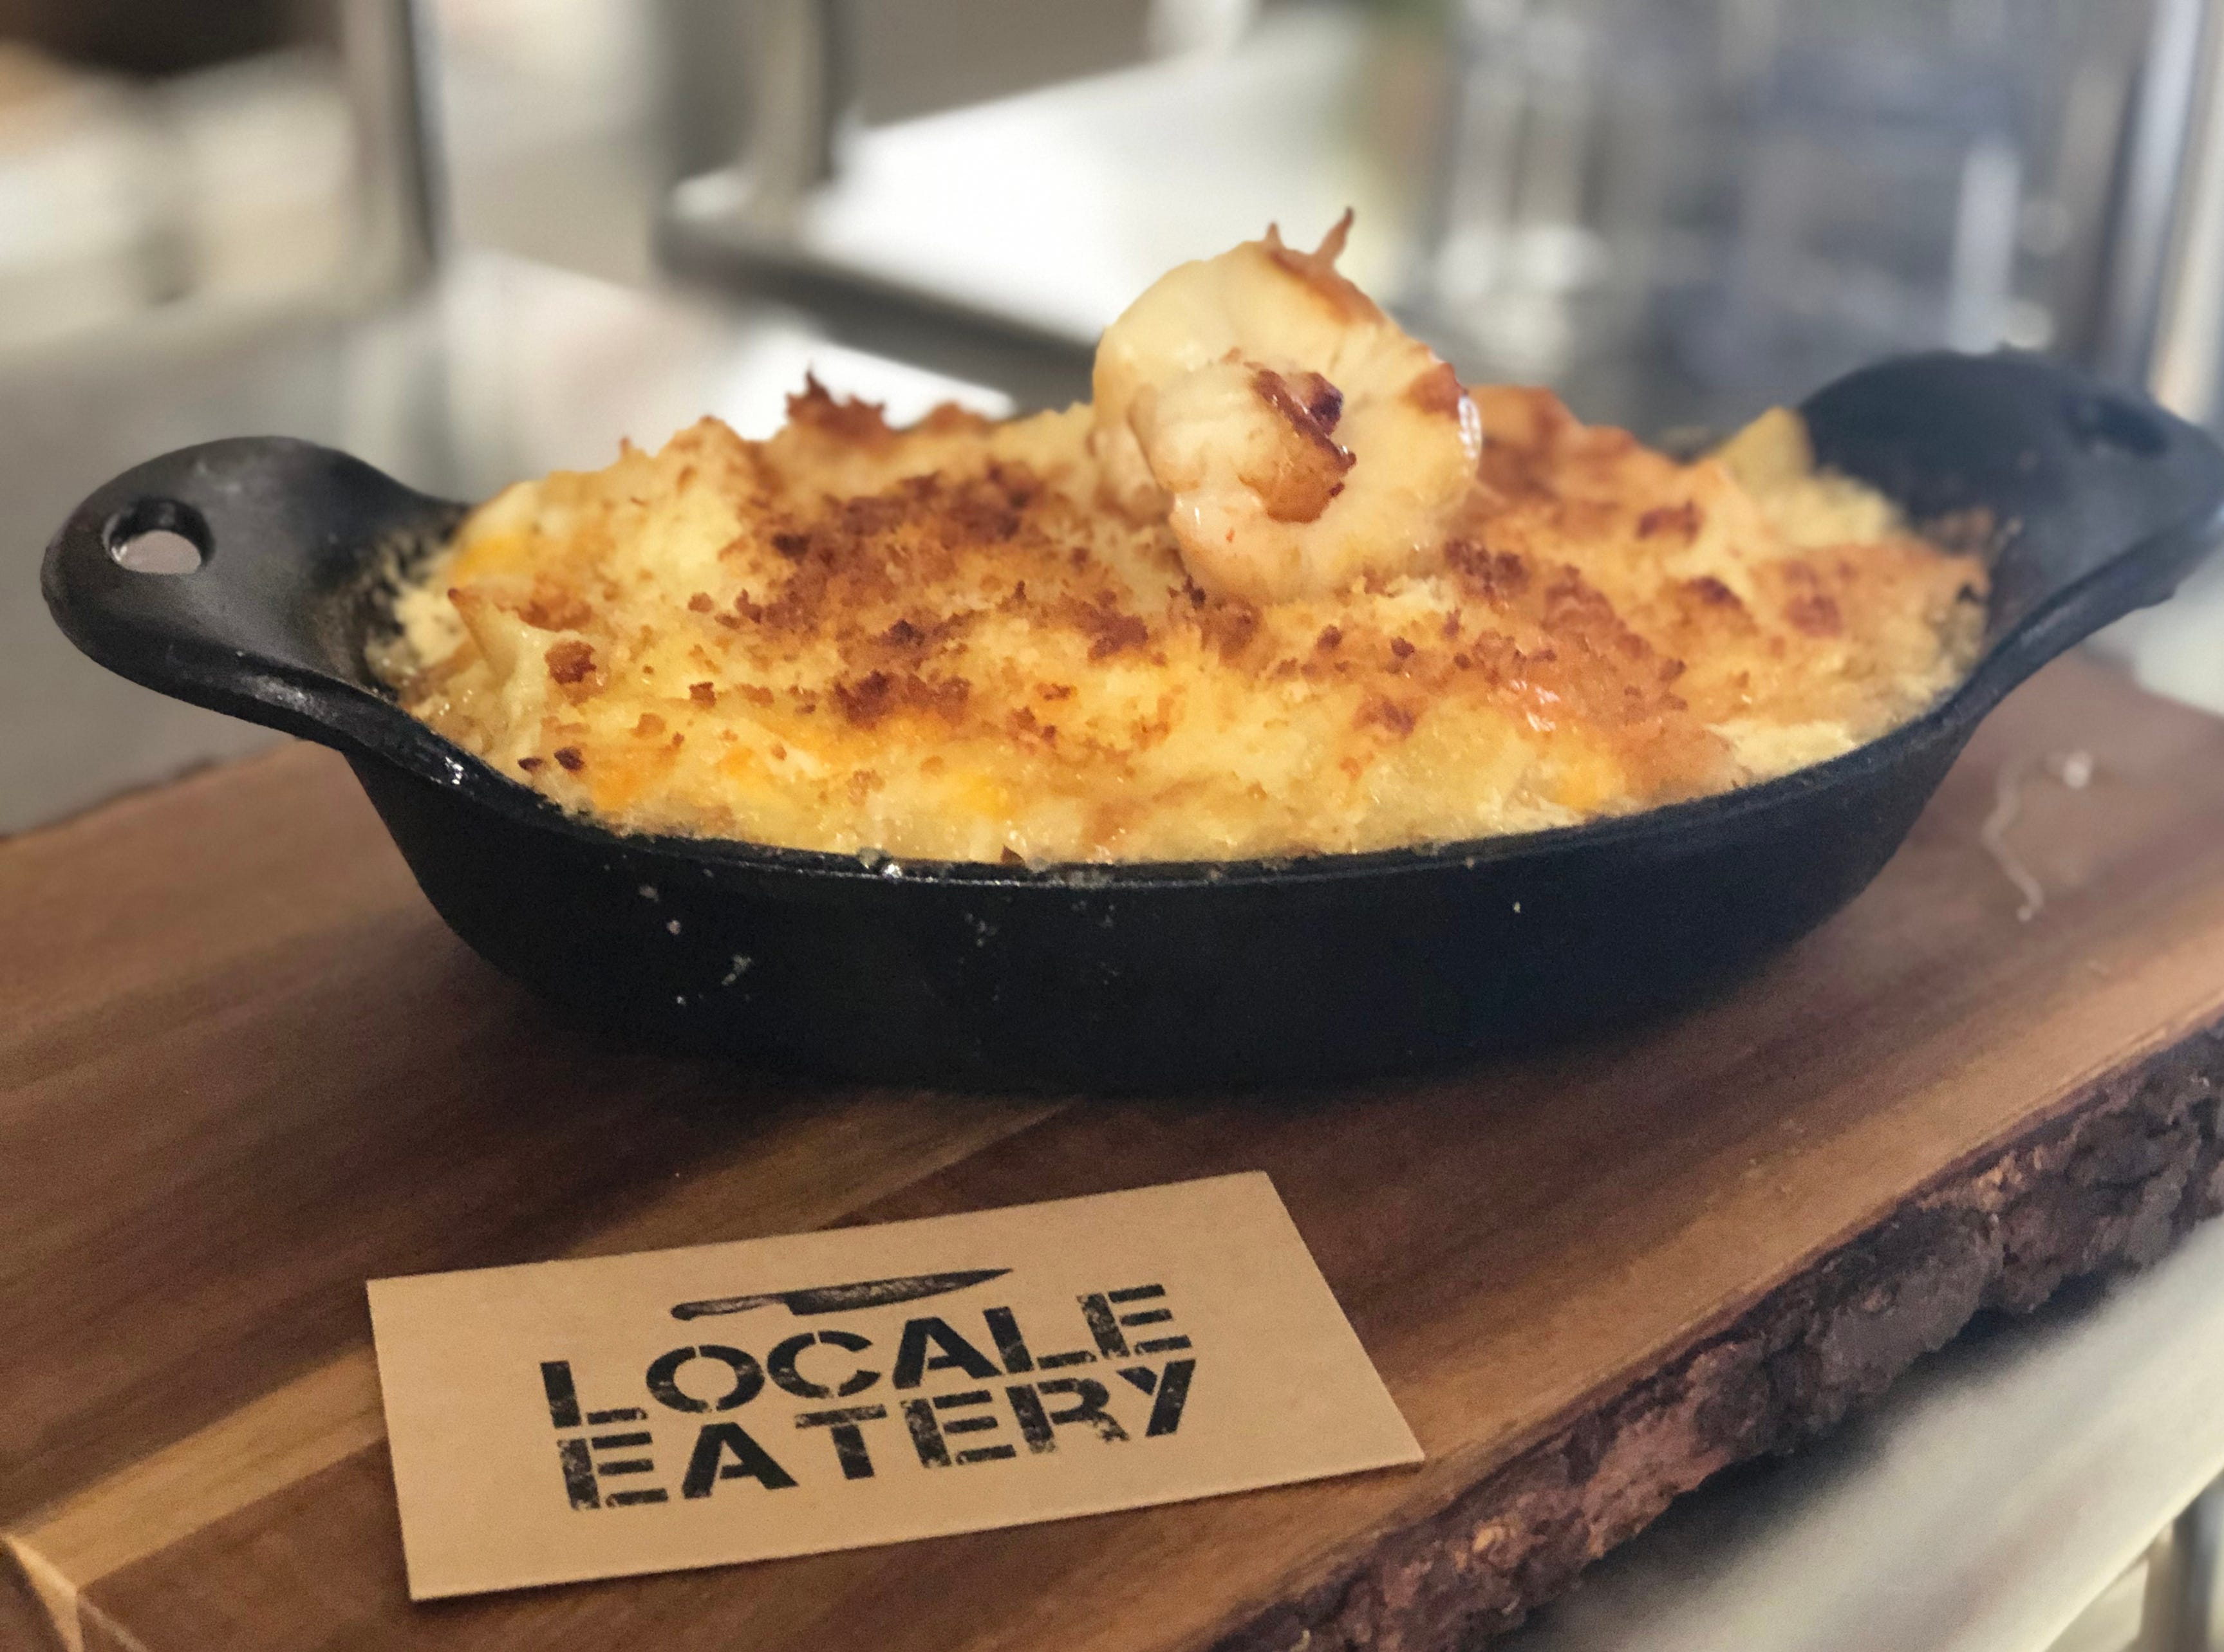 Lobster Mac N Cheese is made with a four-cheese blend at Locale Eatery in North Naples.